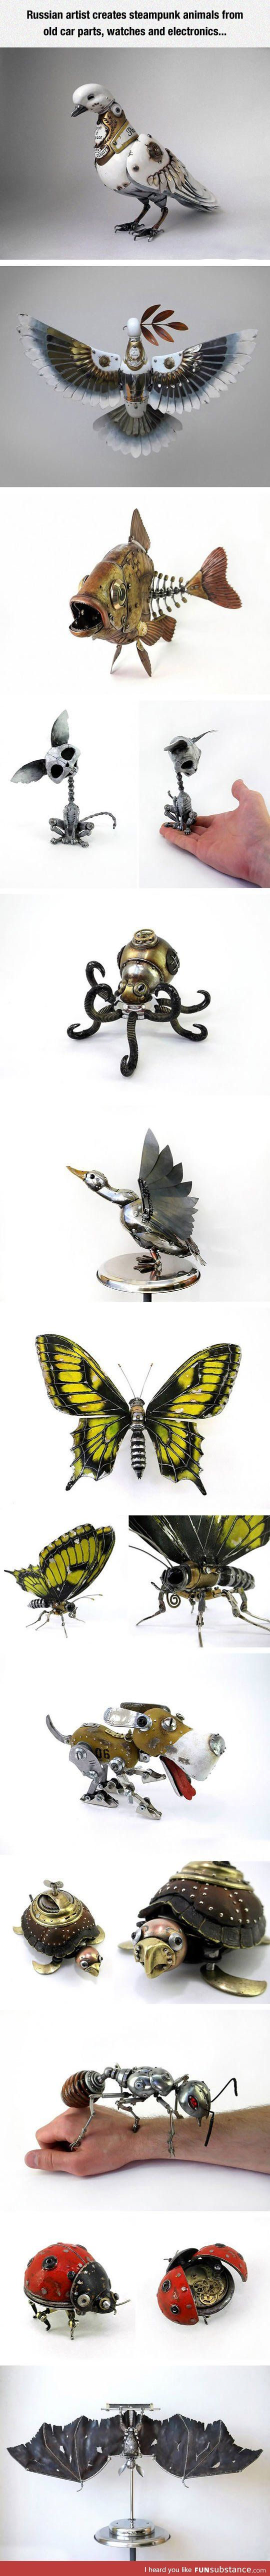 Steampunk animals from old car parts